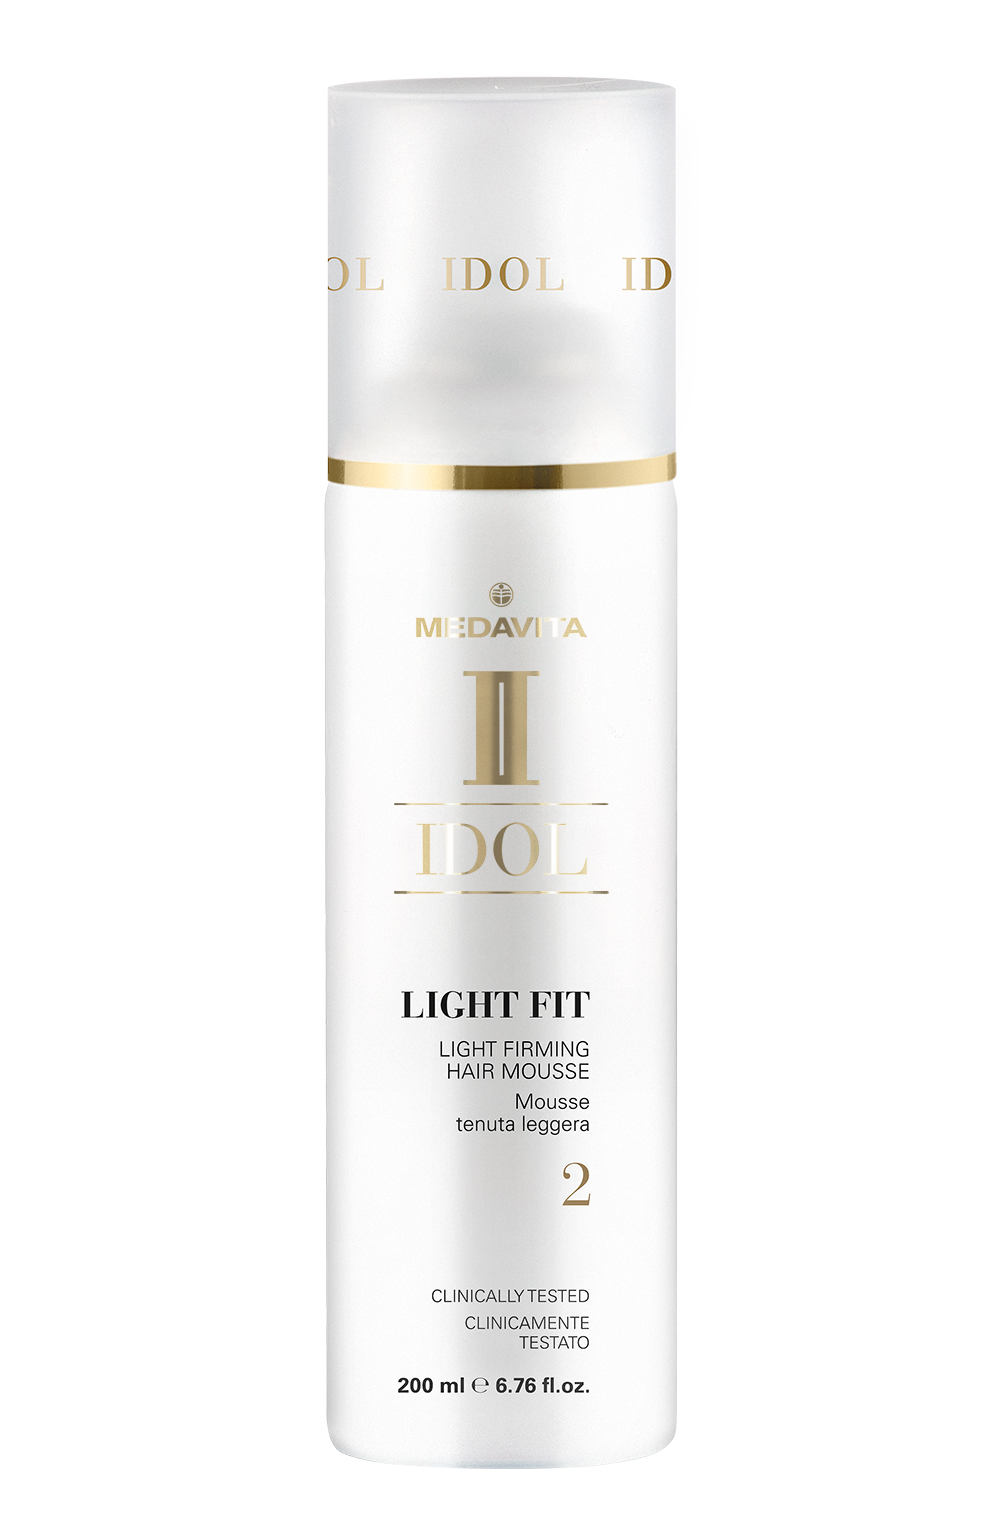 Light Fit Mousse IDOL 200ml_03-klein